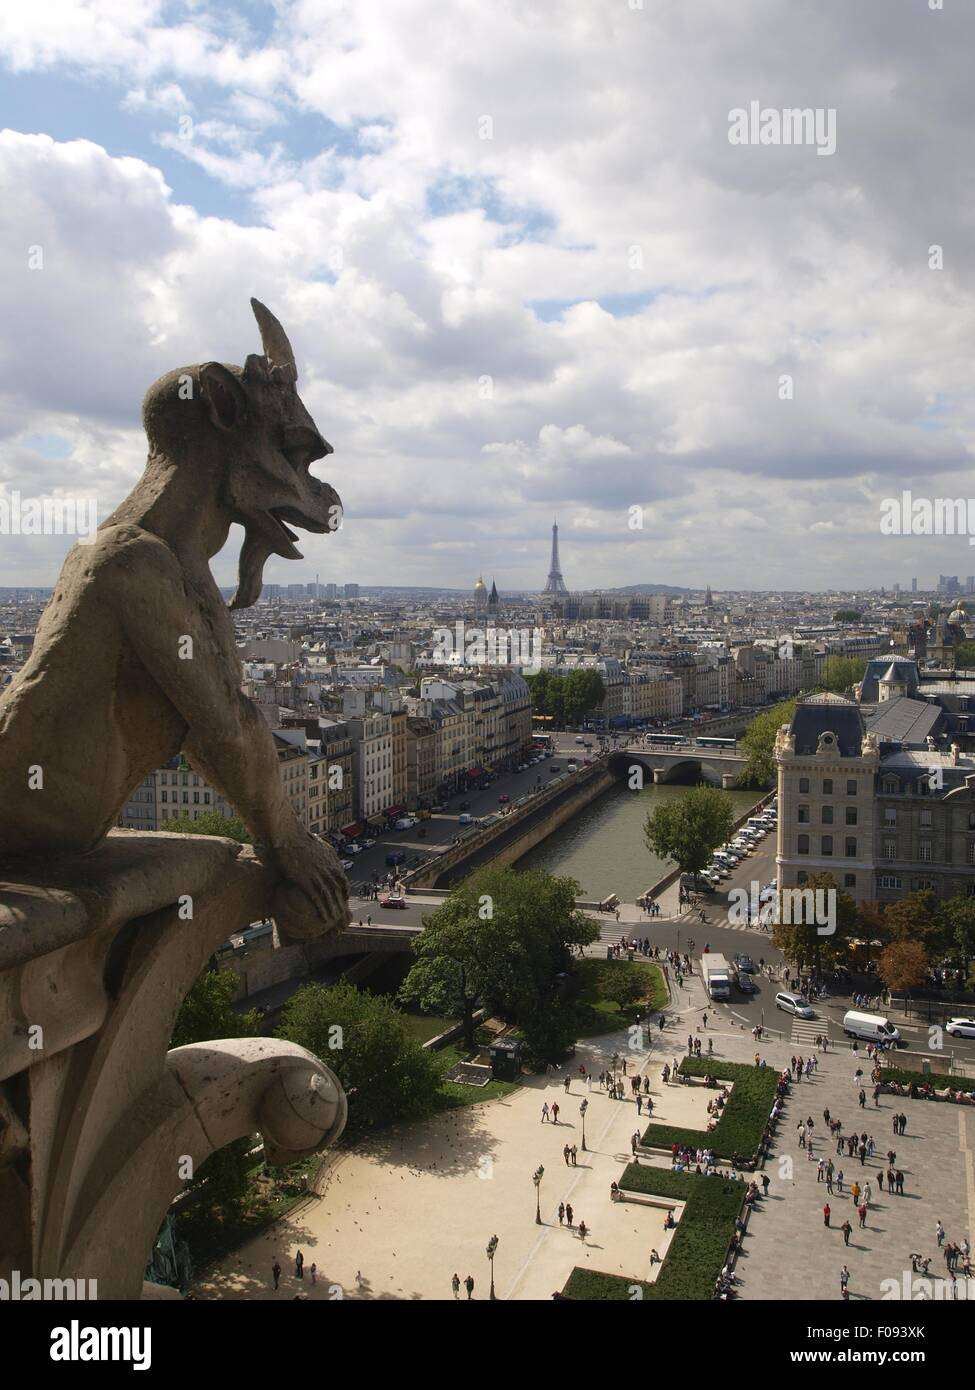 Mythical creatures of Notre-Dame against cityscape of Paris, France - Stock Image